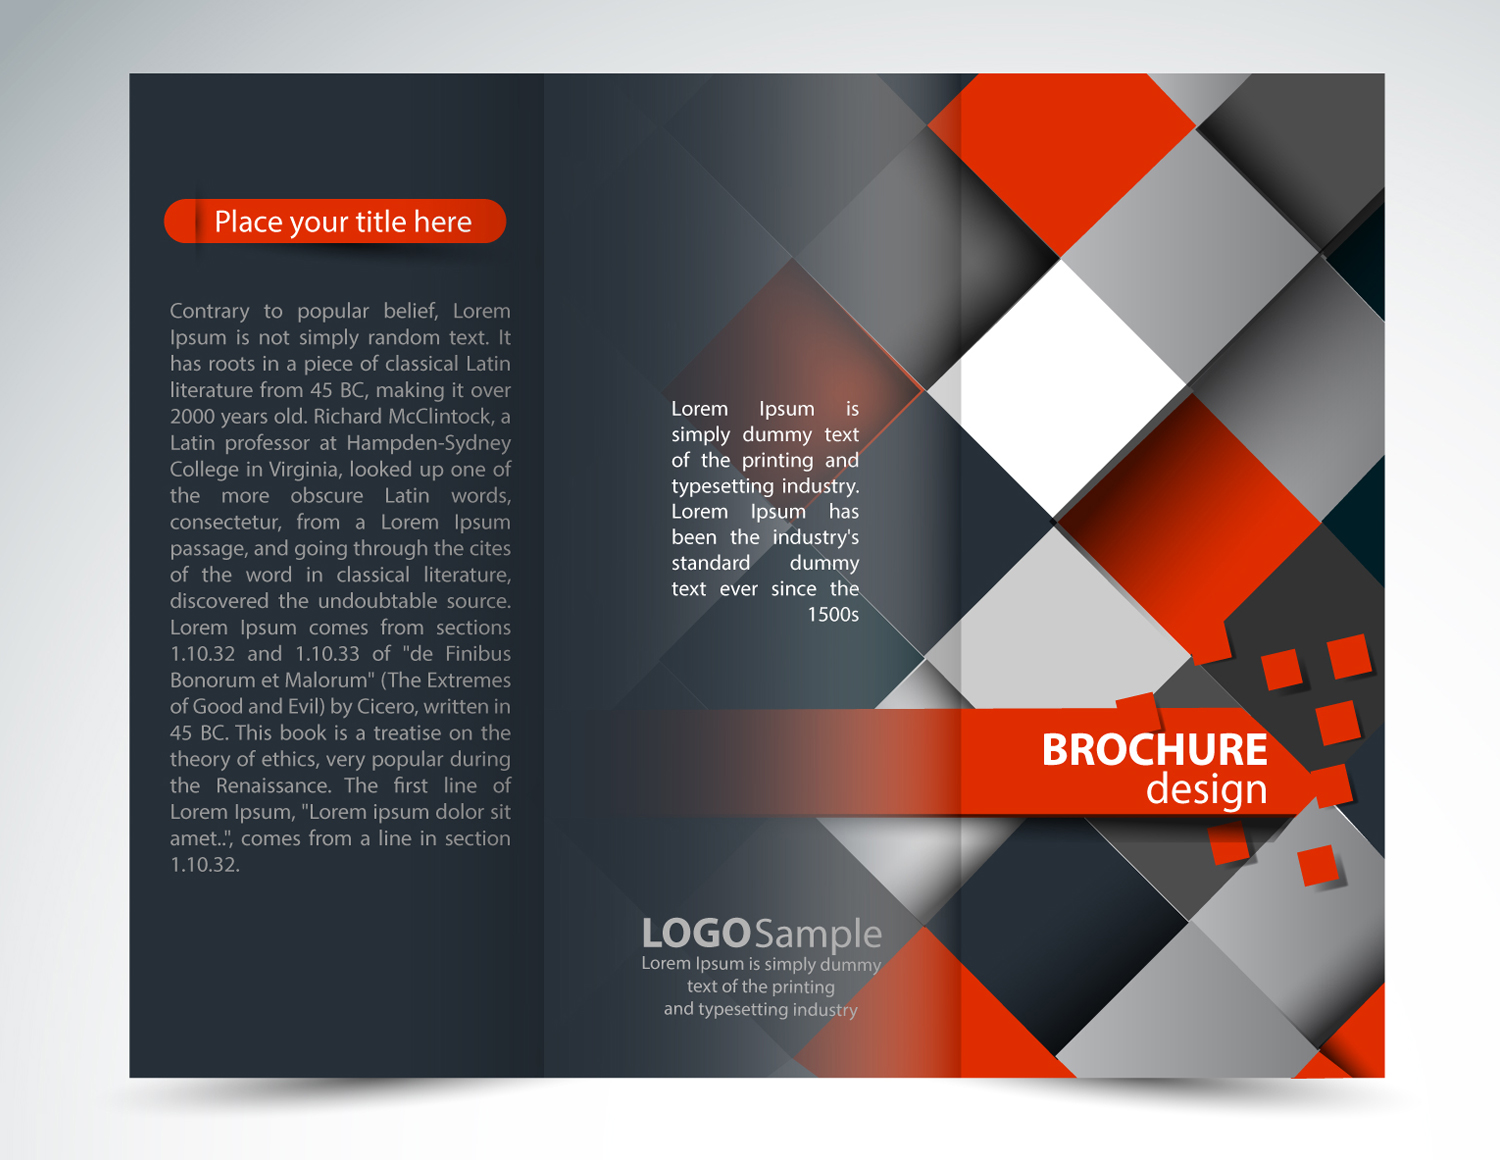 Los_Angeles_Brochure_Design.jpg